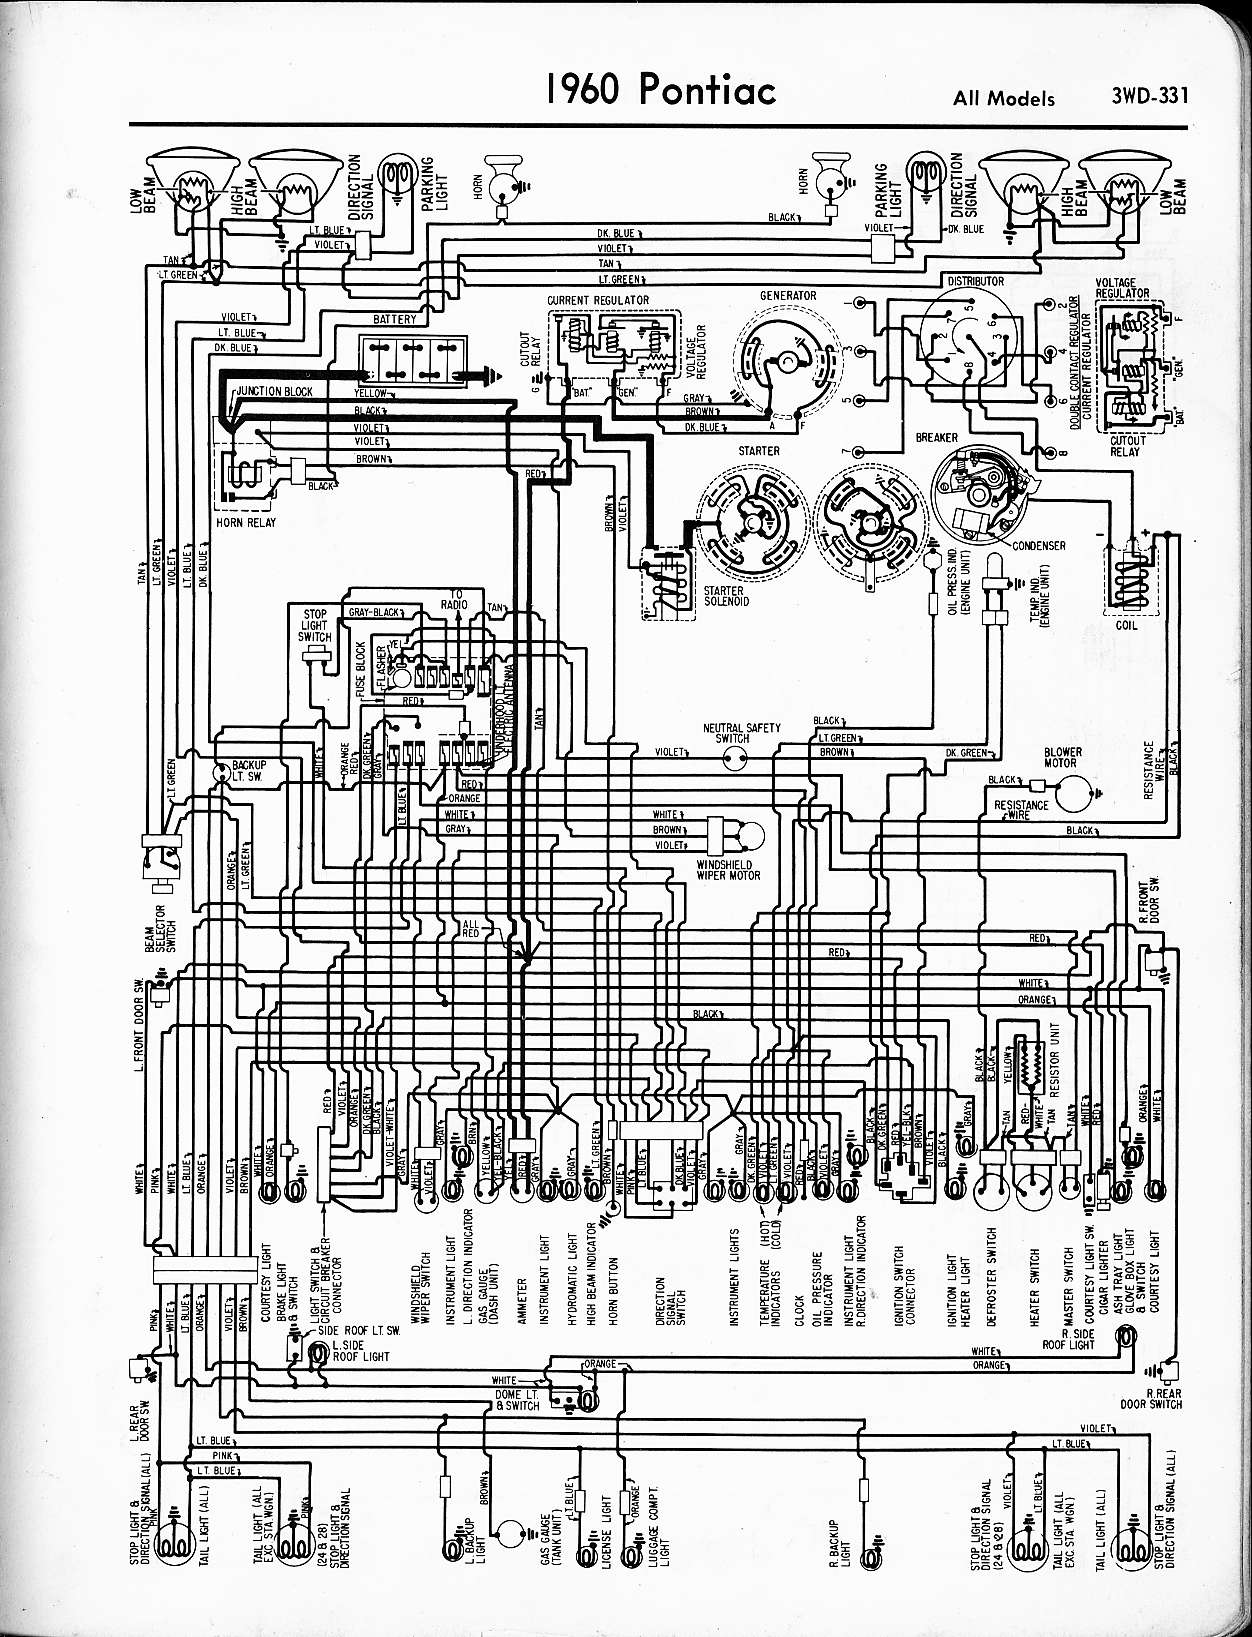 67 camaro engine wiring diagram free download wiring diagram